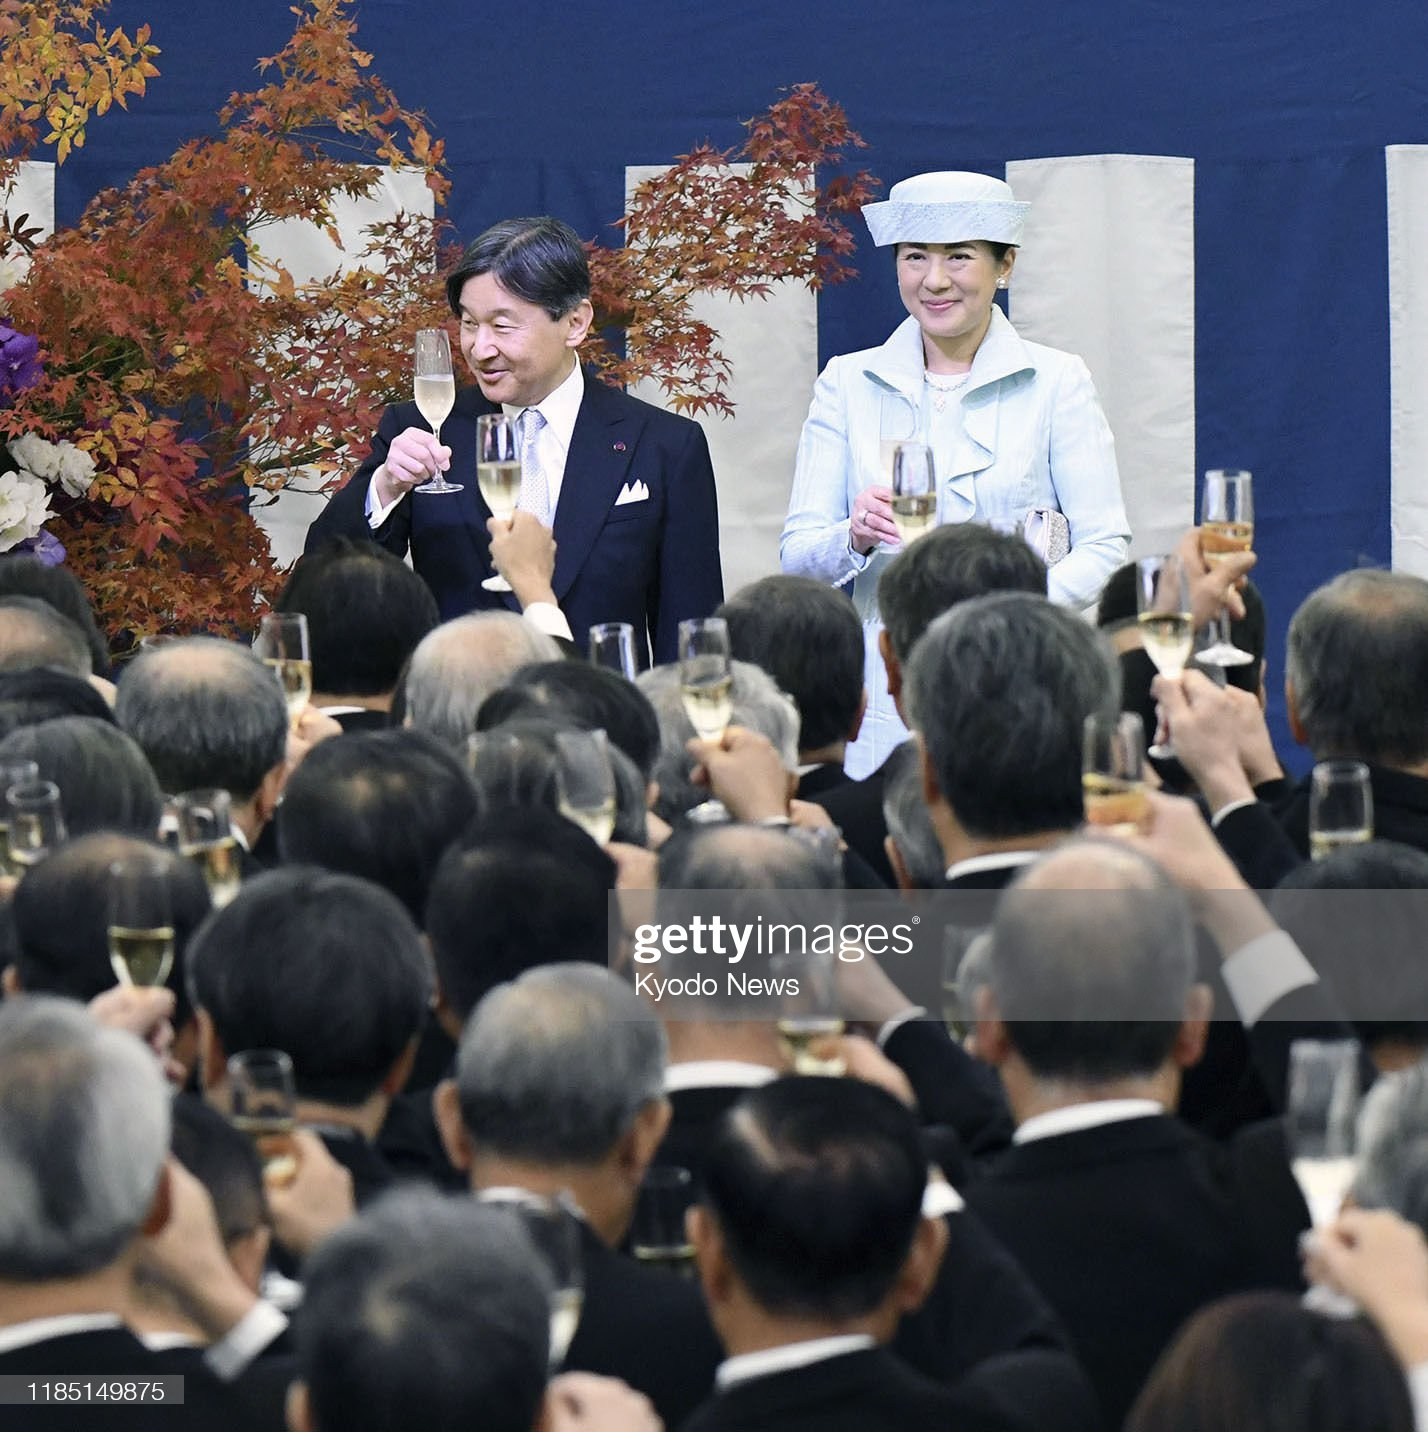 japanese-emperor-naruhito-and-empress-masako-attend-a-tea-party-by-picture-id1185149875